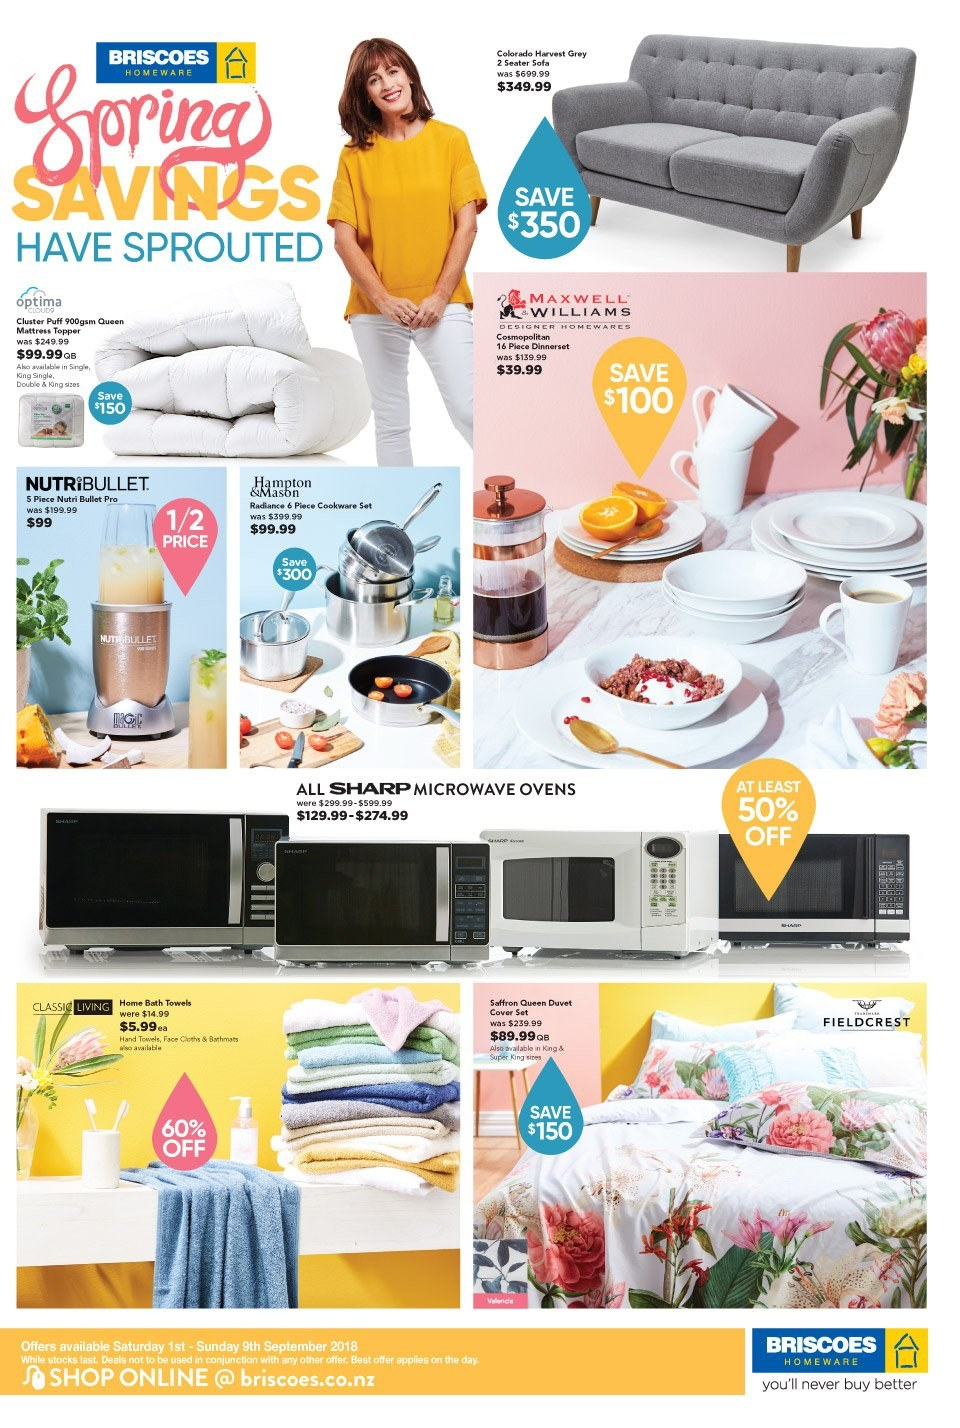 Briscoes mailer - 01.09.2018 - 09.09.2018 - Sales products - sofa, topper, mattress protector, cookware set, dinnerware set, duvet, quilt cover set, bath towel, towel, NutriBullet. Page 1.